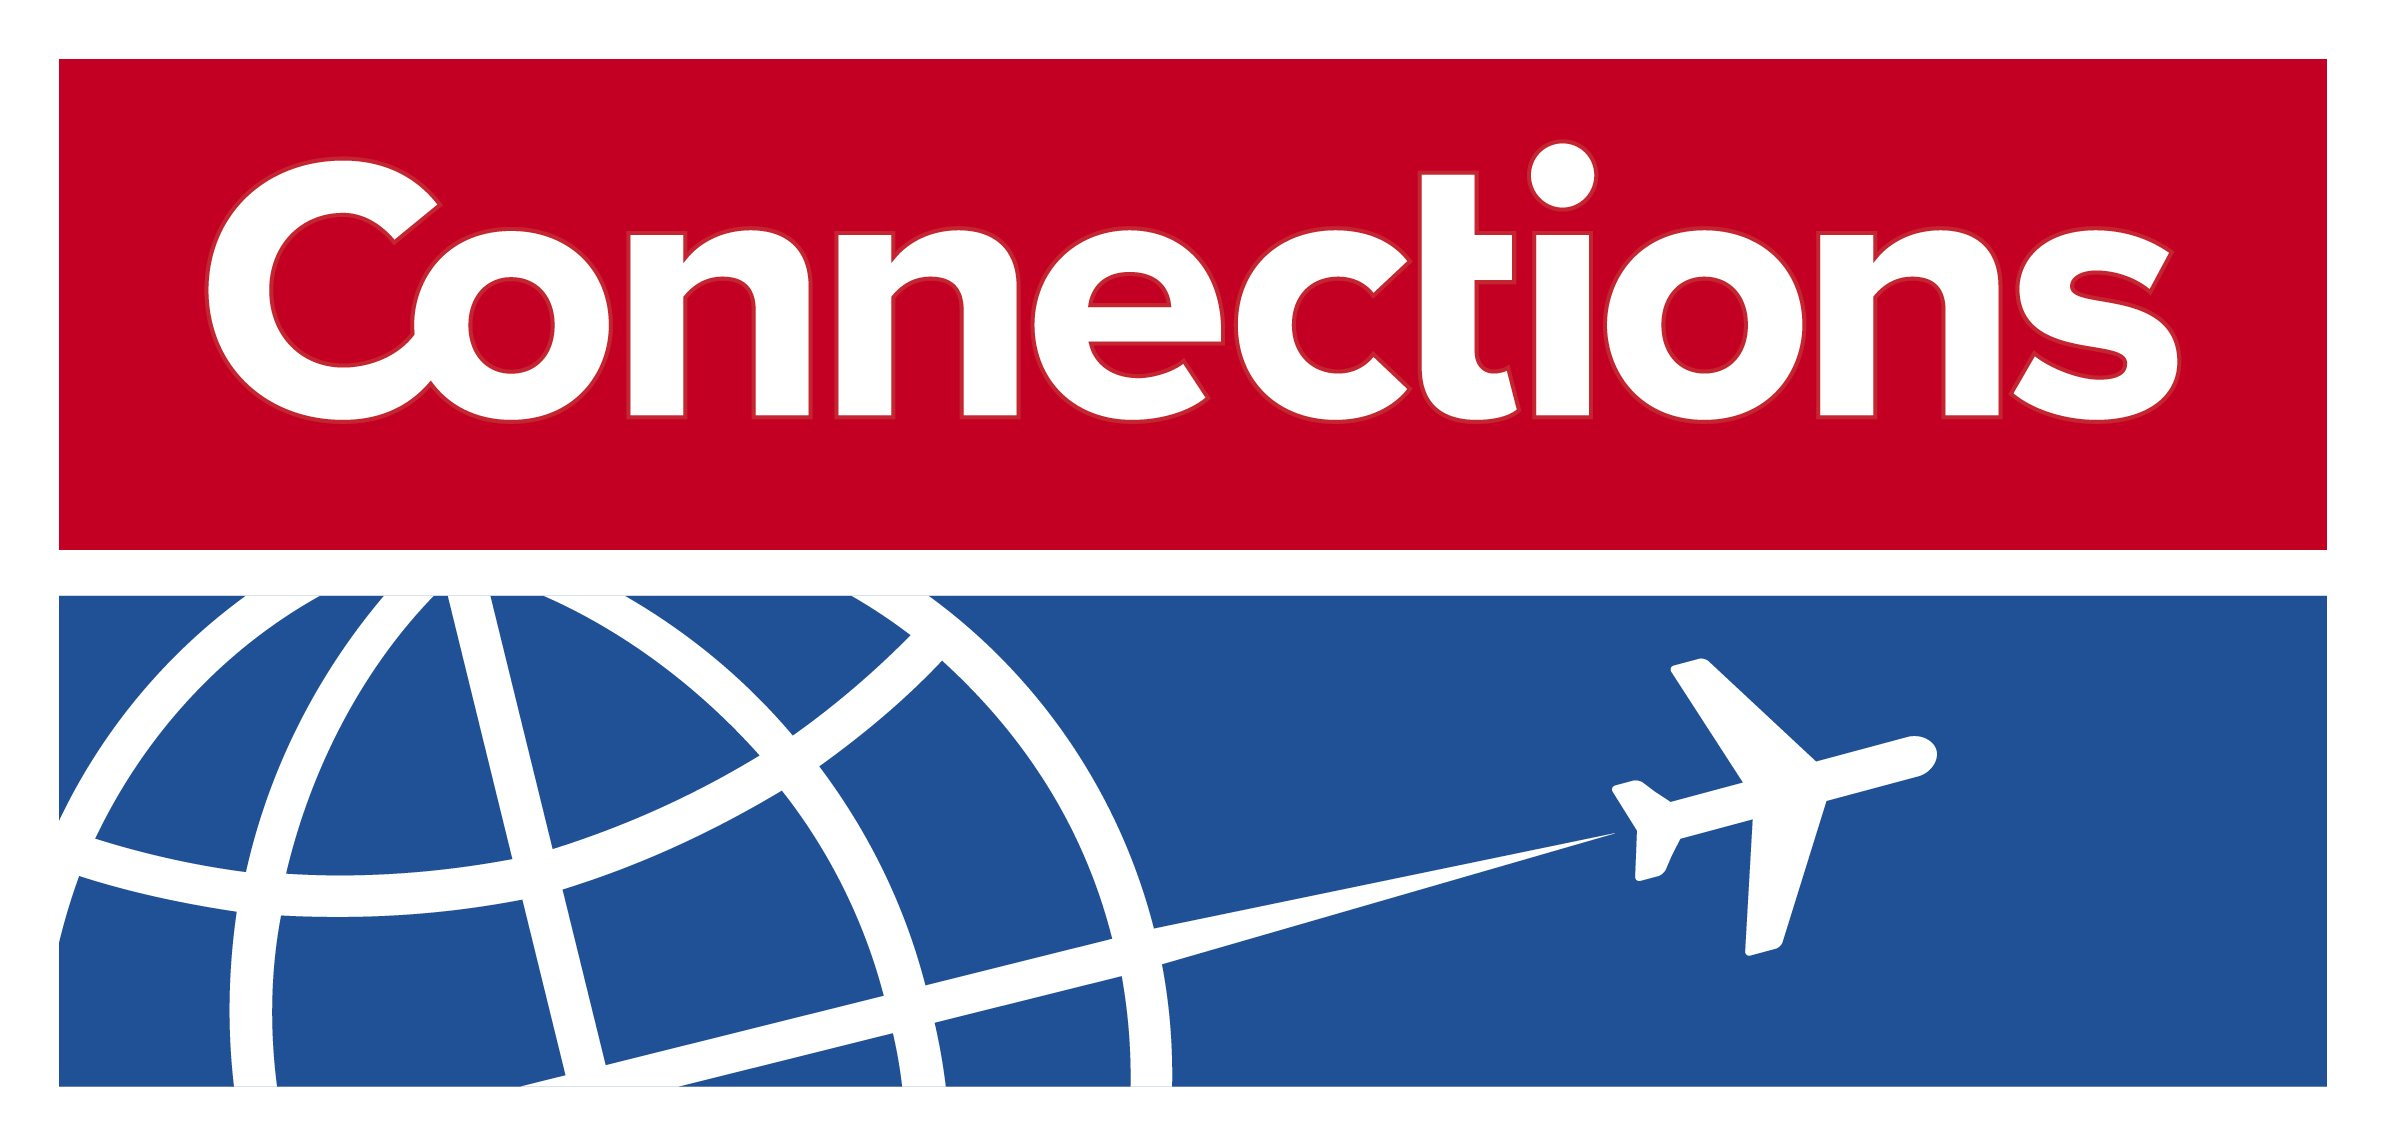 connections-logo.jpg